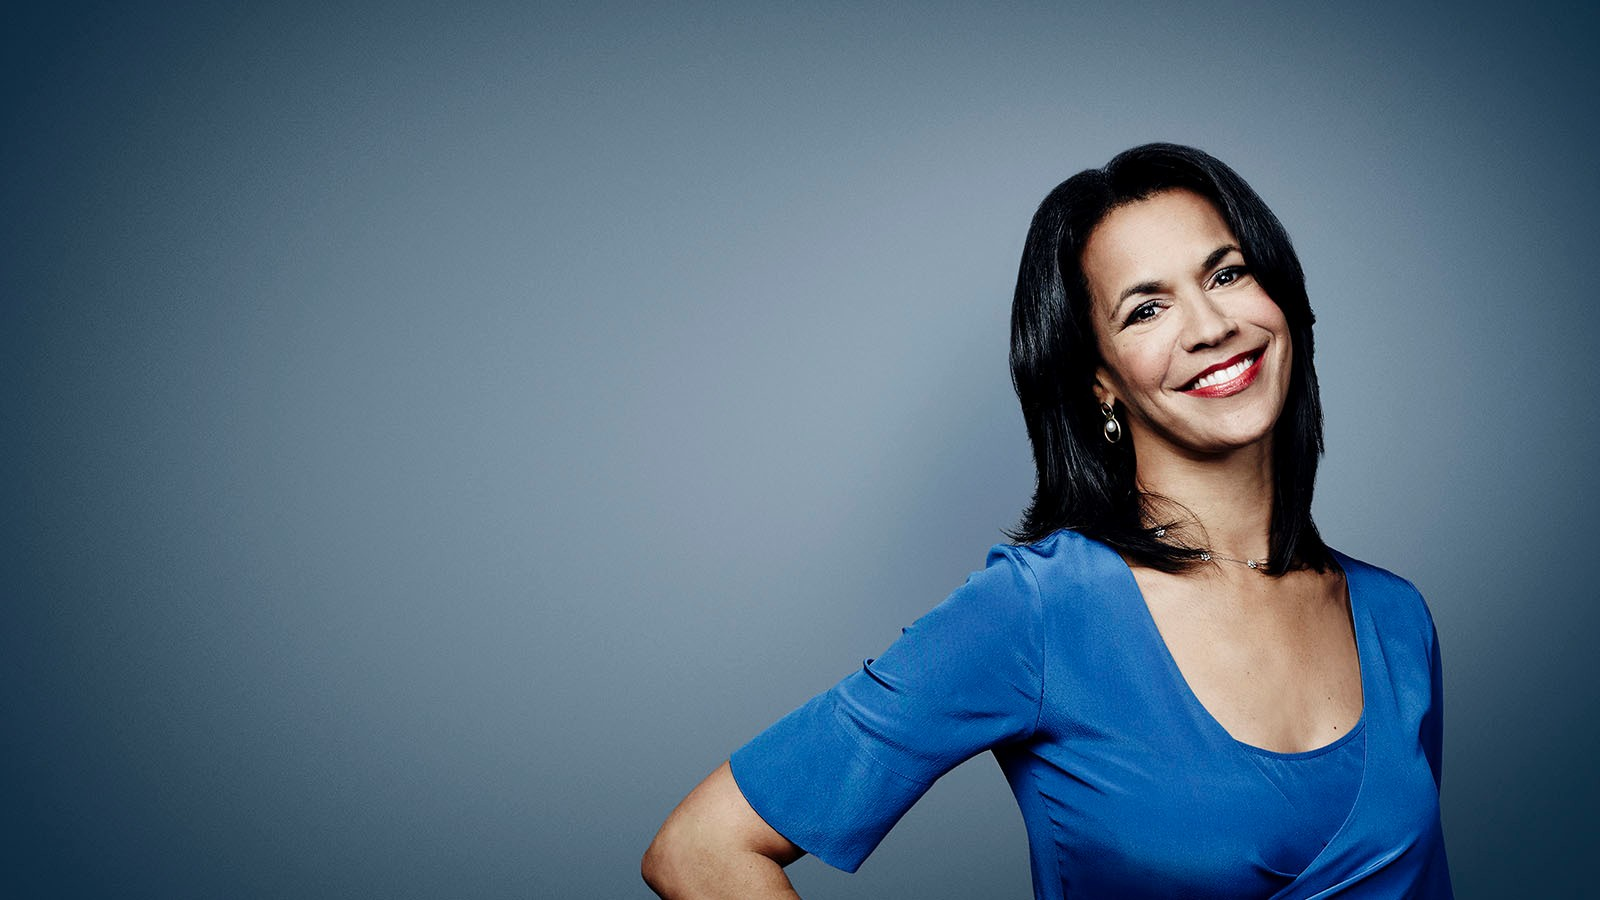 CNN Profiles - Fredricka Whitfield - Anchor - CNN.com